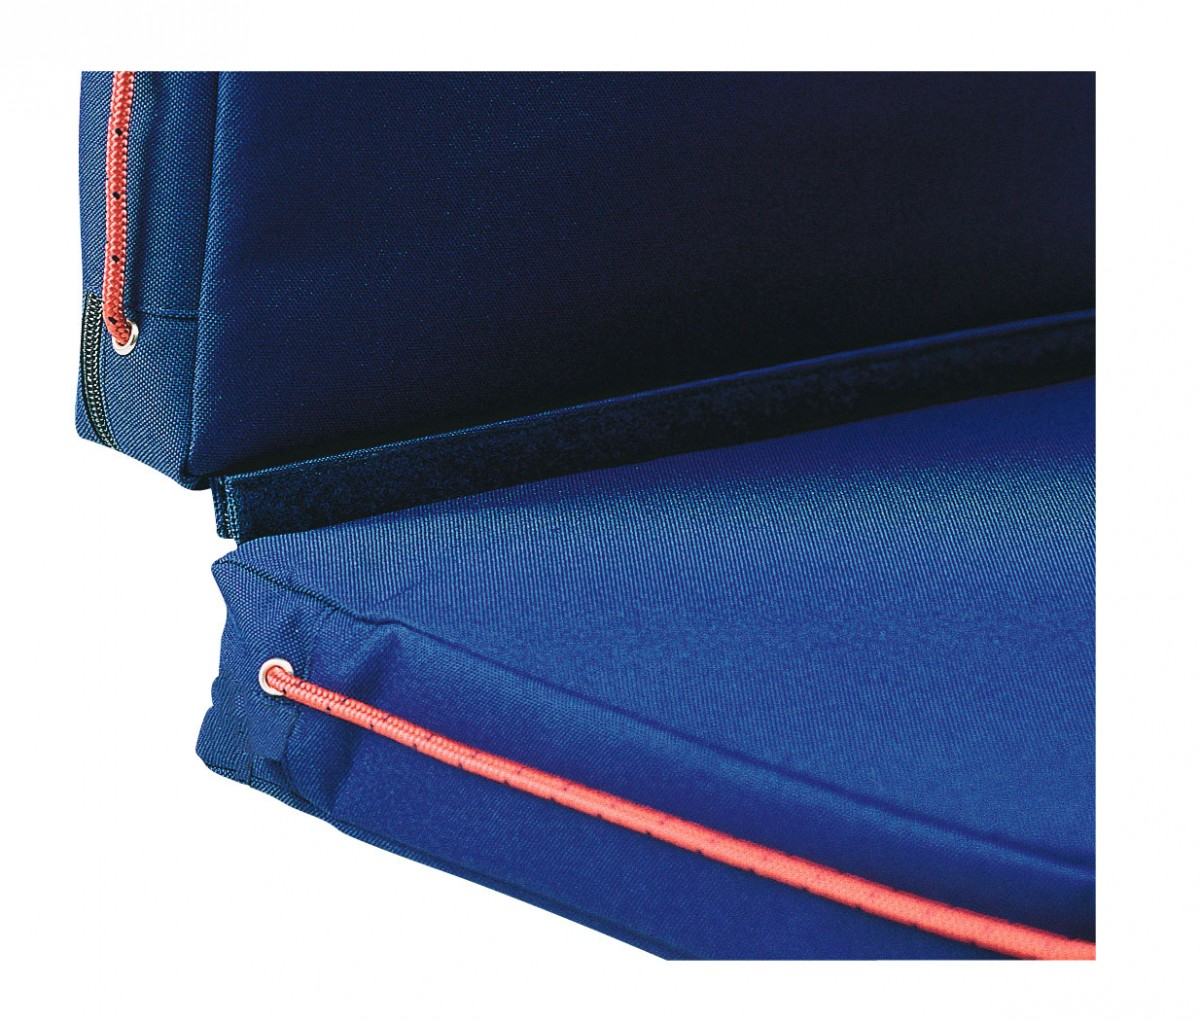 2 single cushions can be assembled with integrated Velcro to provide seat and back-rest